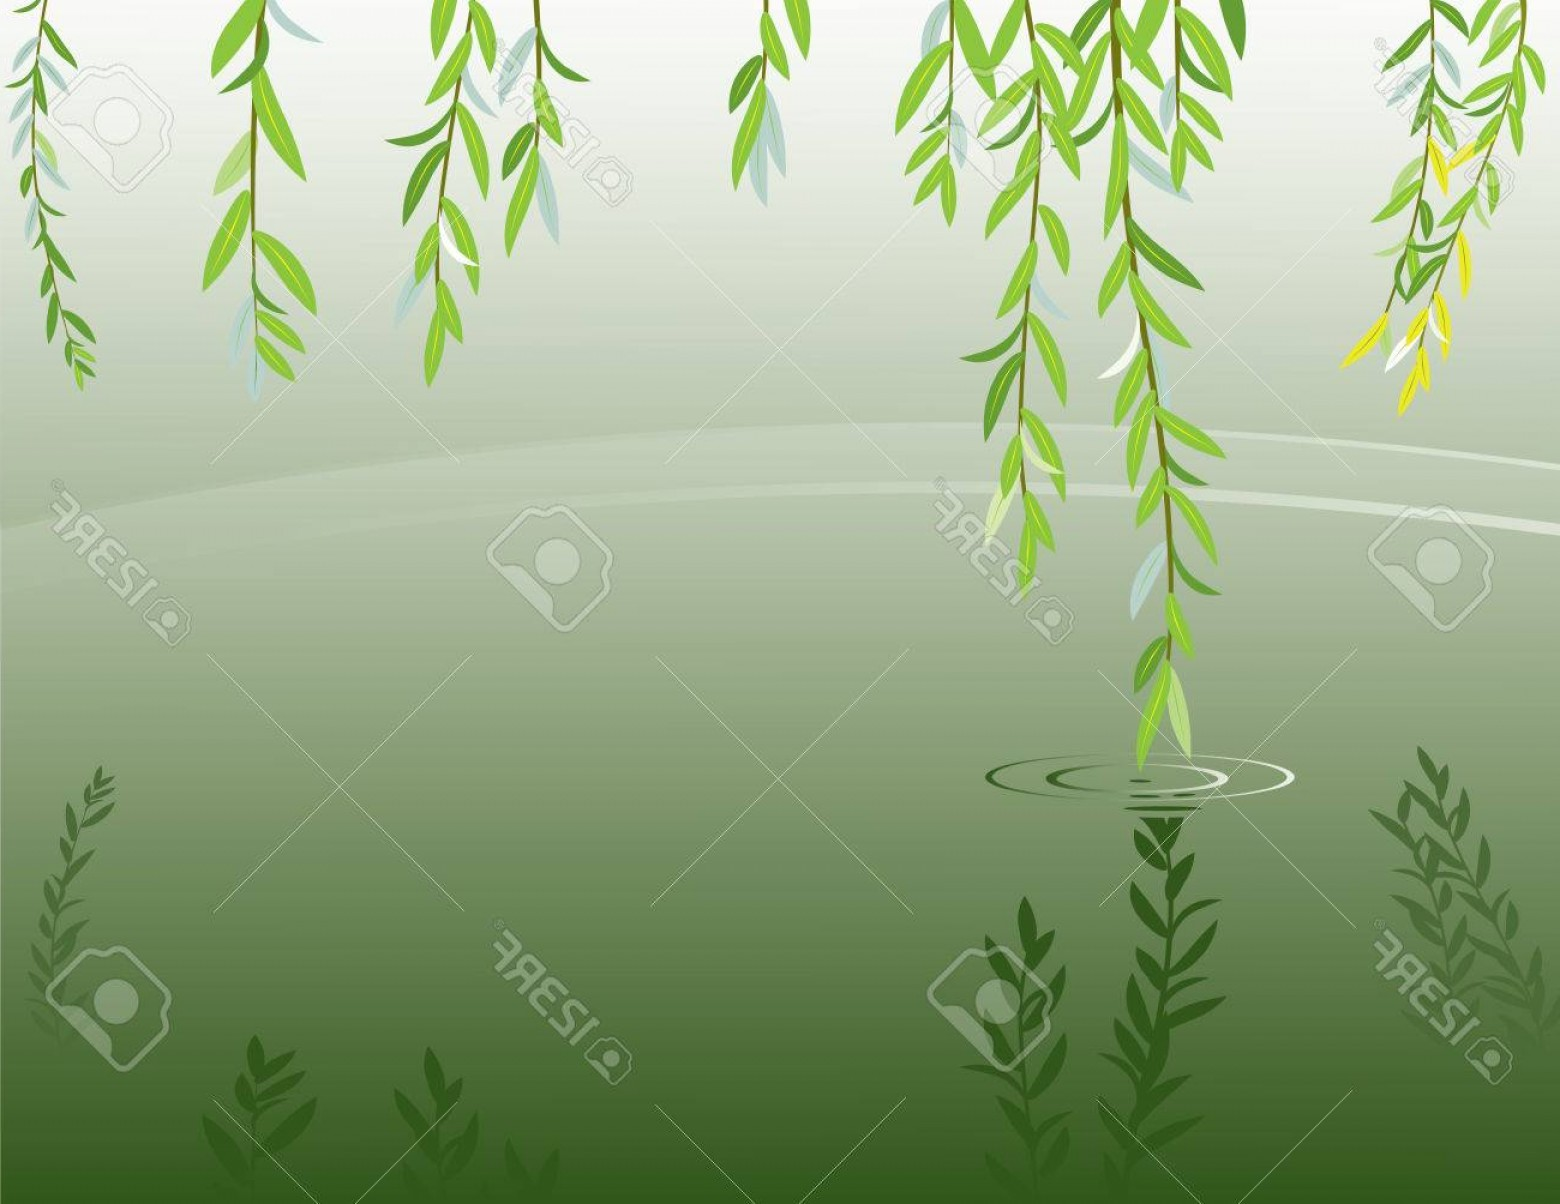 Vector Natural Willow: Photostock Vector Vector Illustration Of Willow Brancheas At Pond Surface